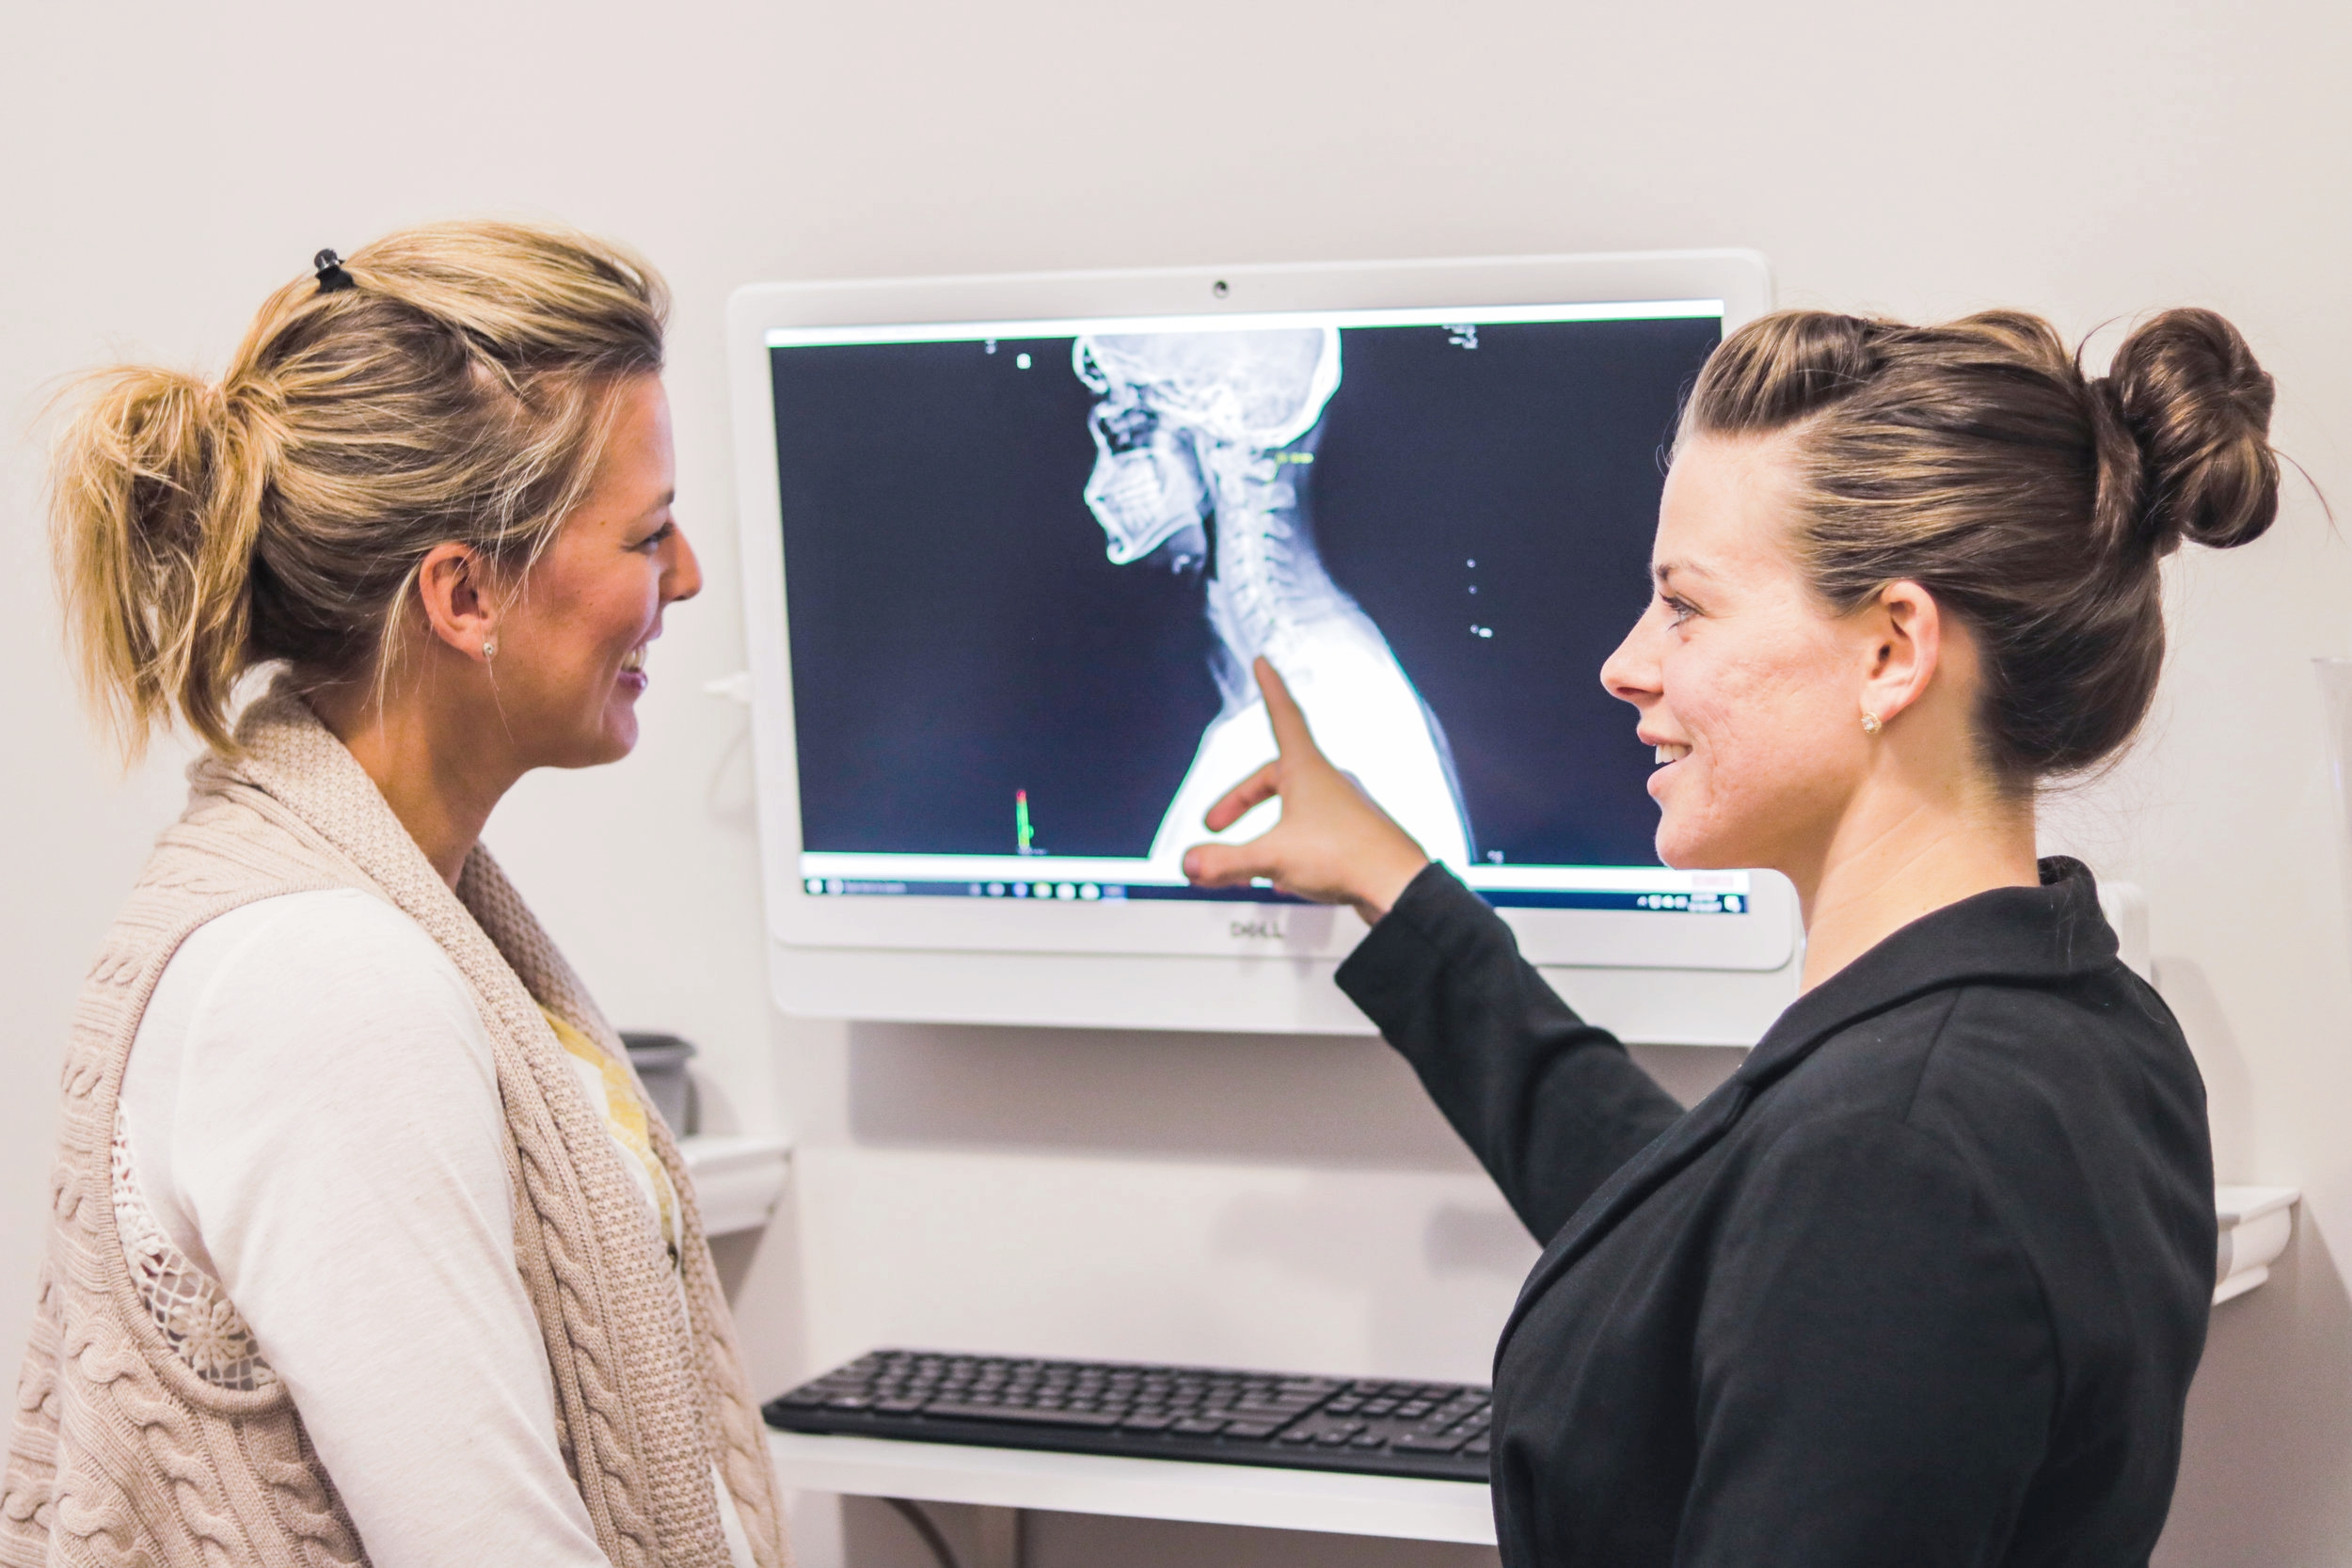 X-Ray Analysis - Our on-site digital x-ray suite enables our doctors to visualize the entire structure of your spine. This is very important in evaluating specifically where spinal segments have misaligned in order for our doctors to know exactly how to gently re-align them and restore proper communication to your nervous system.